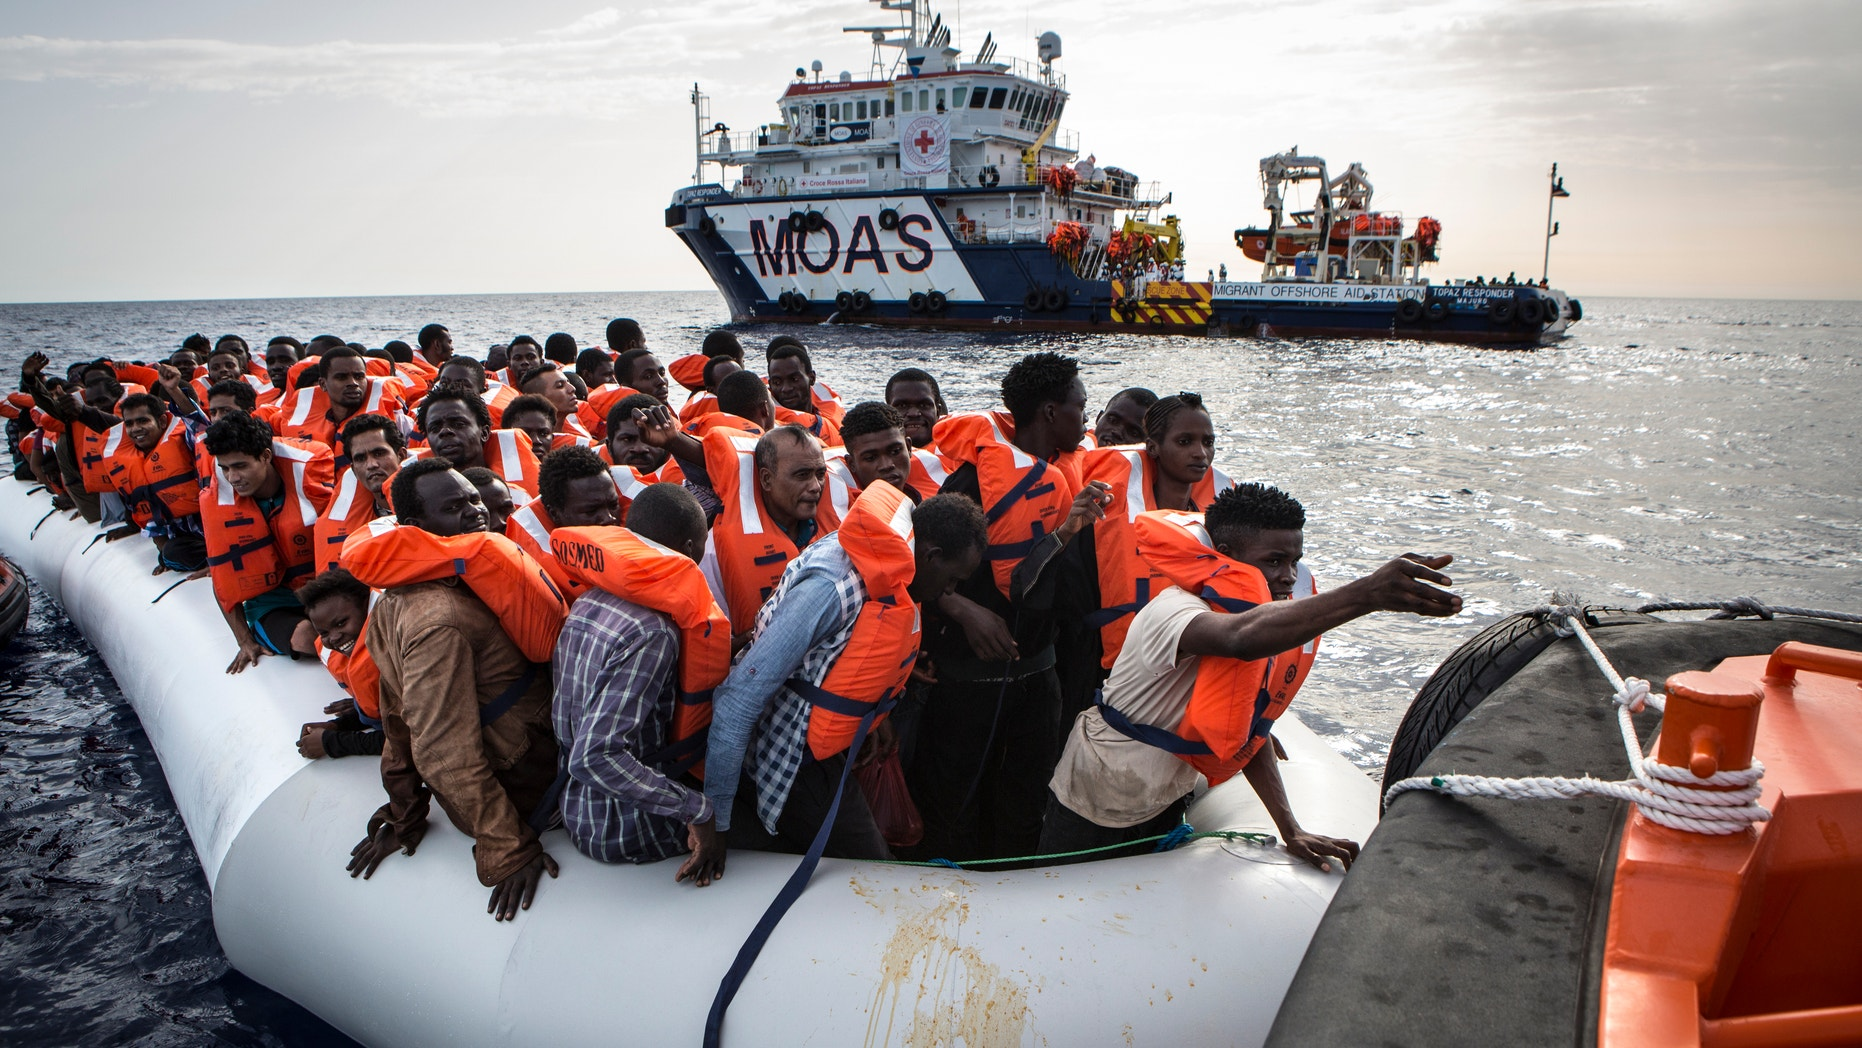 Over 4,000 migrants have died while crossing the Mediterranean Sea in 2016, the highest amount to date.